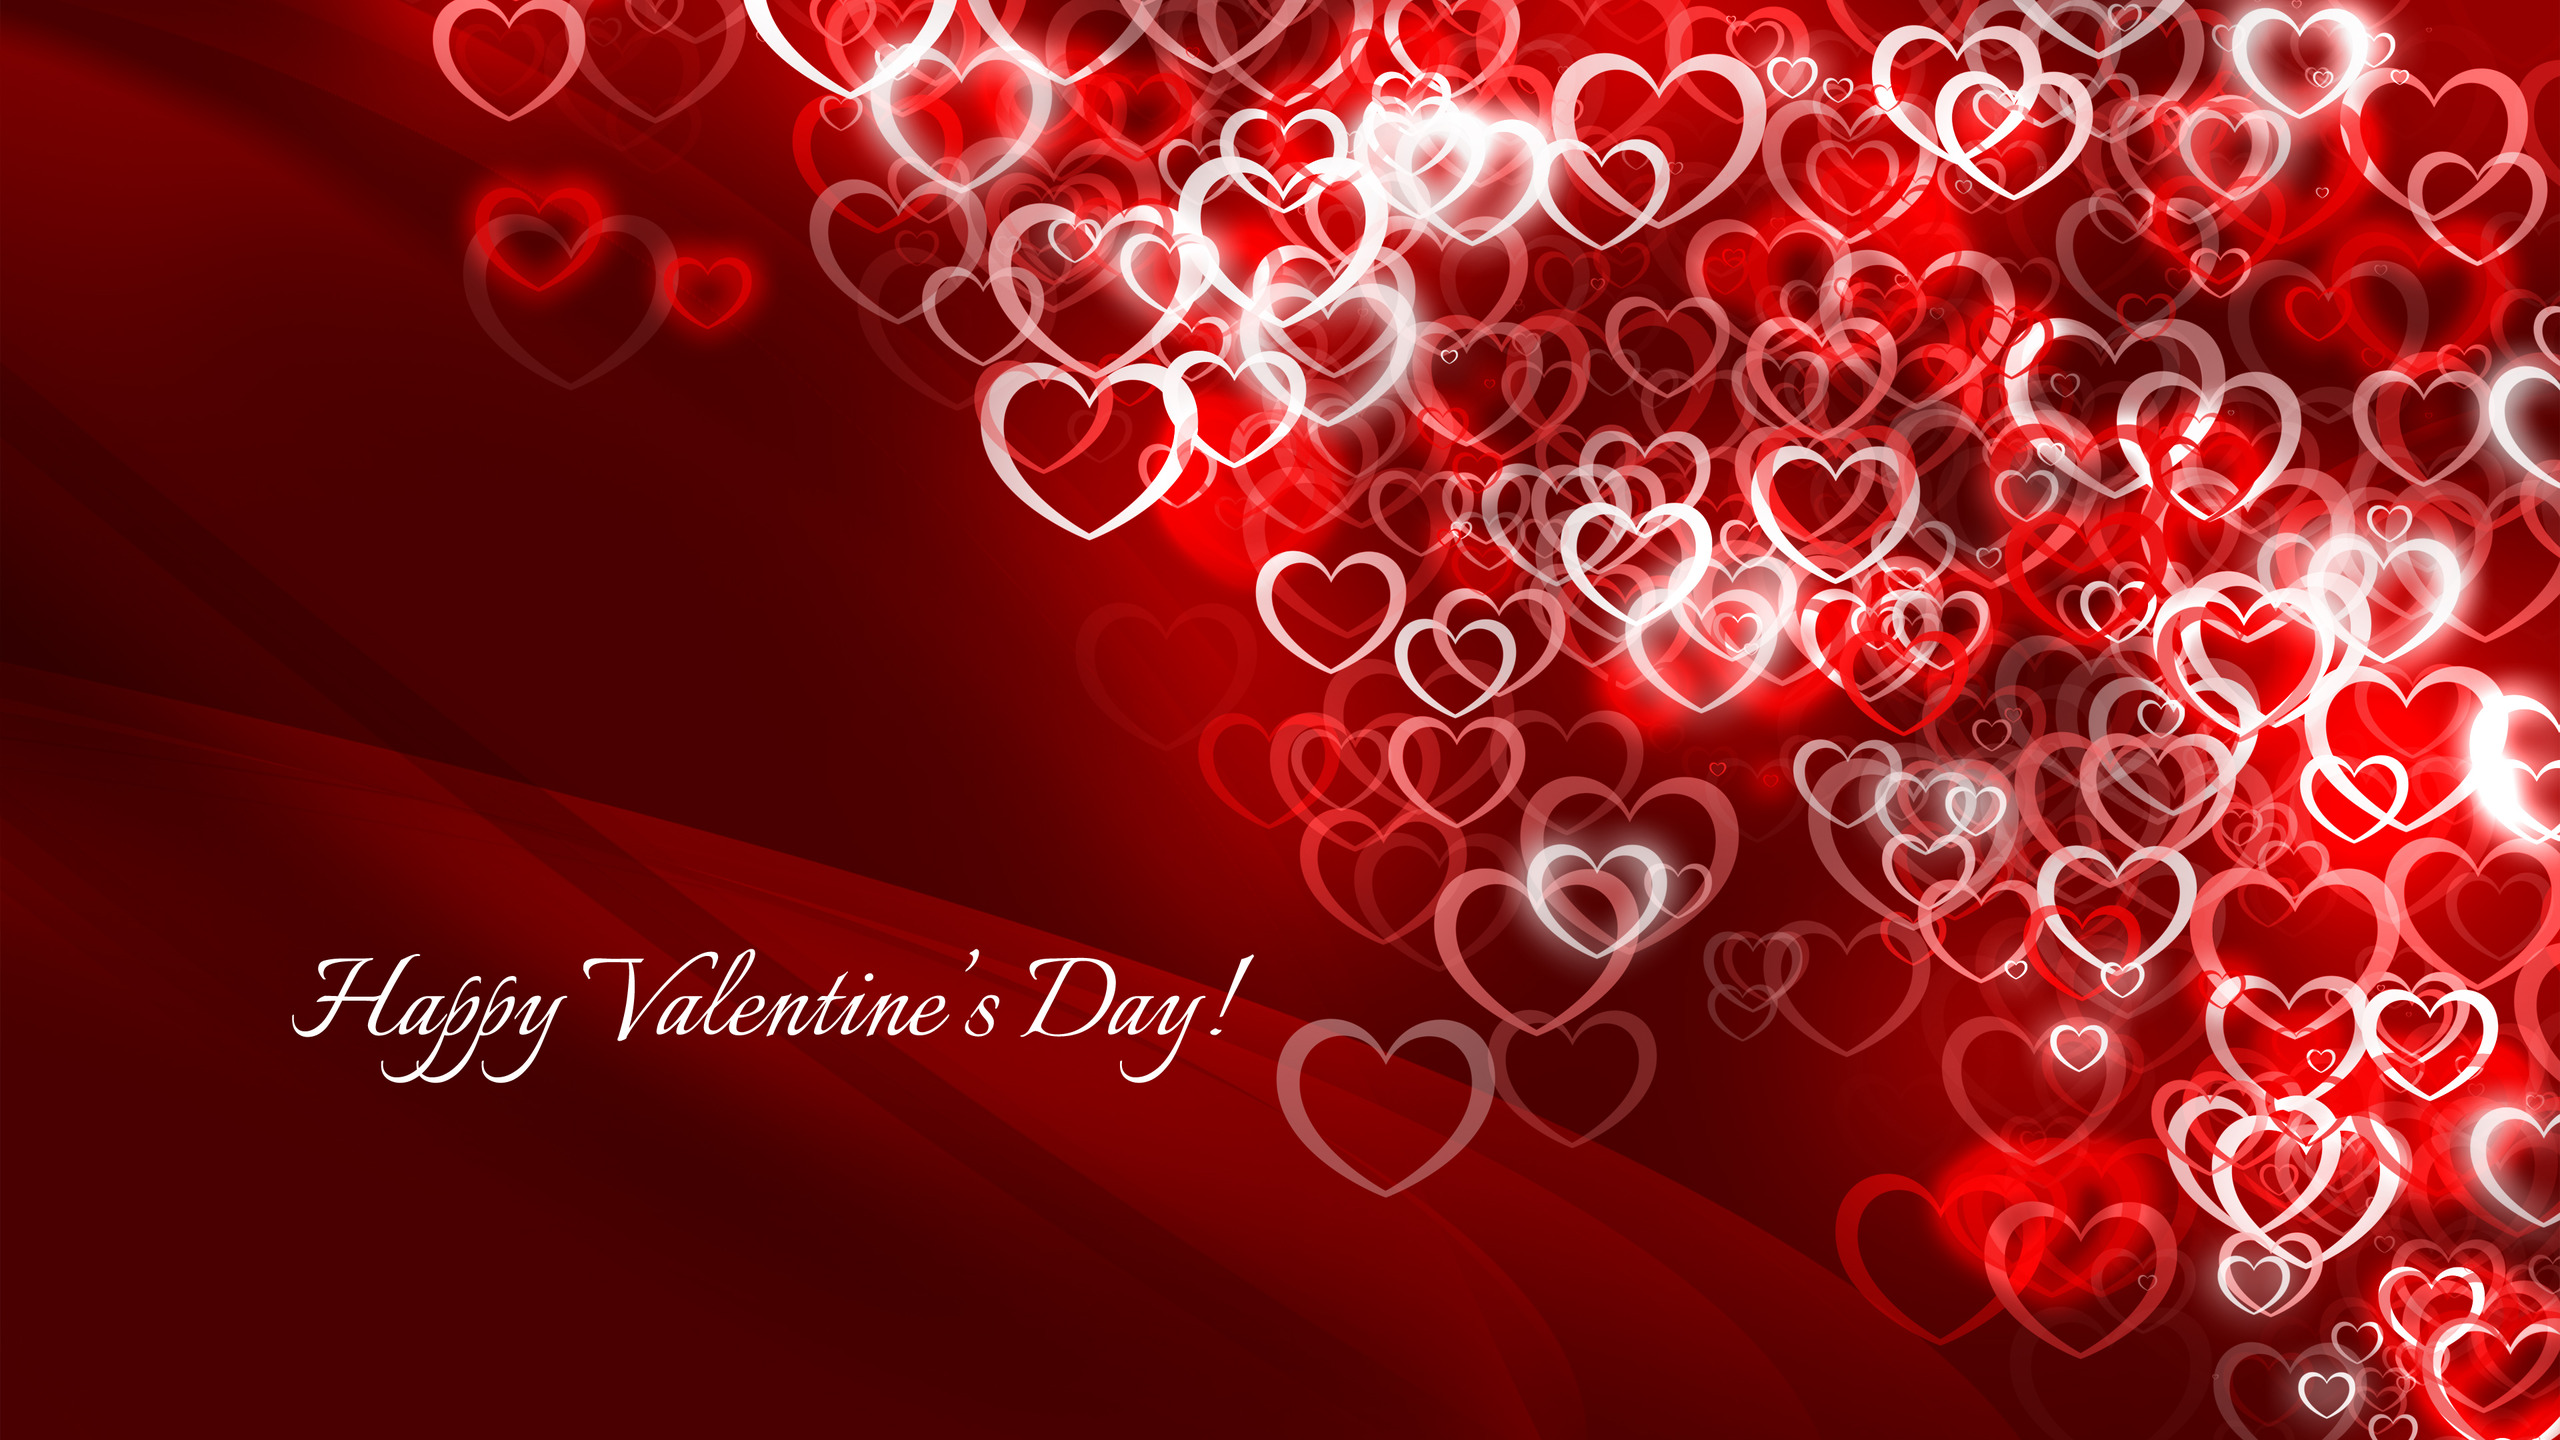 HD Wallpapers Of Valentine Day